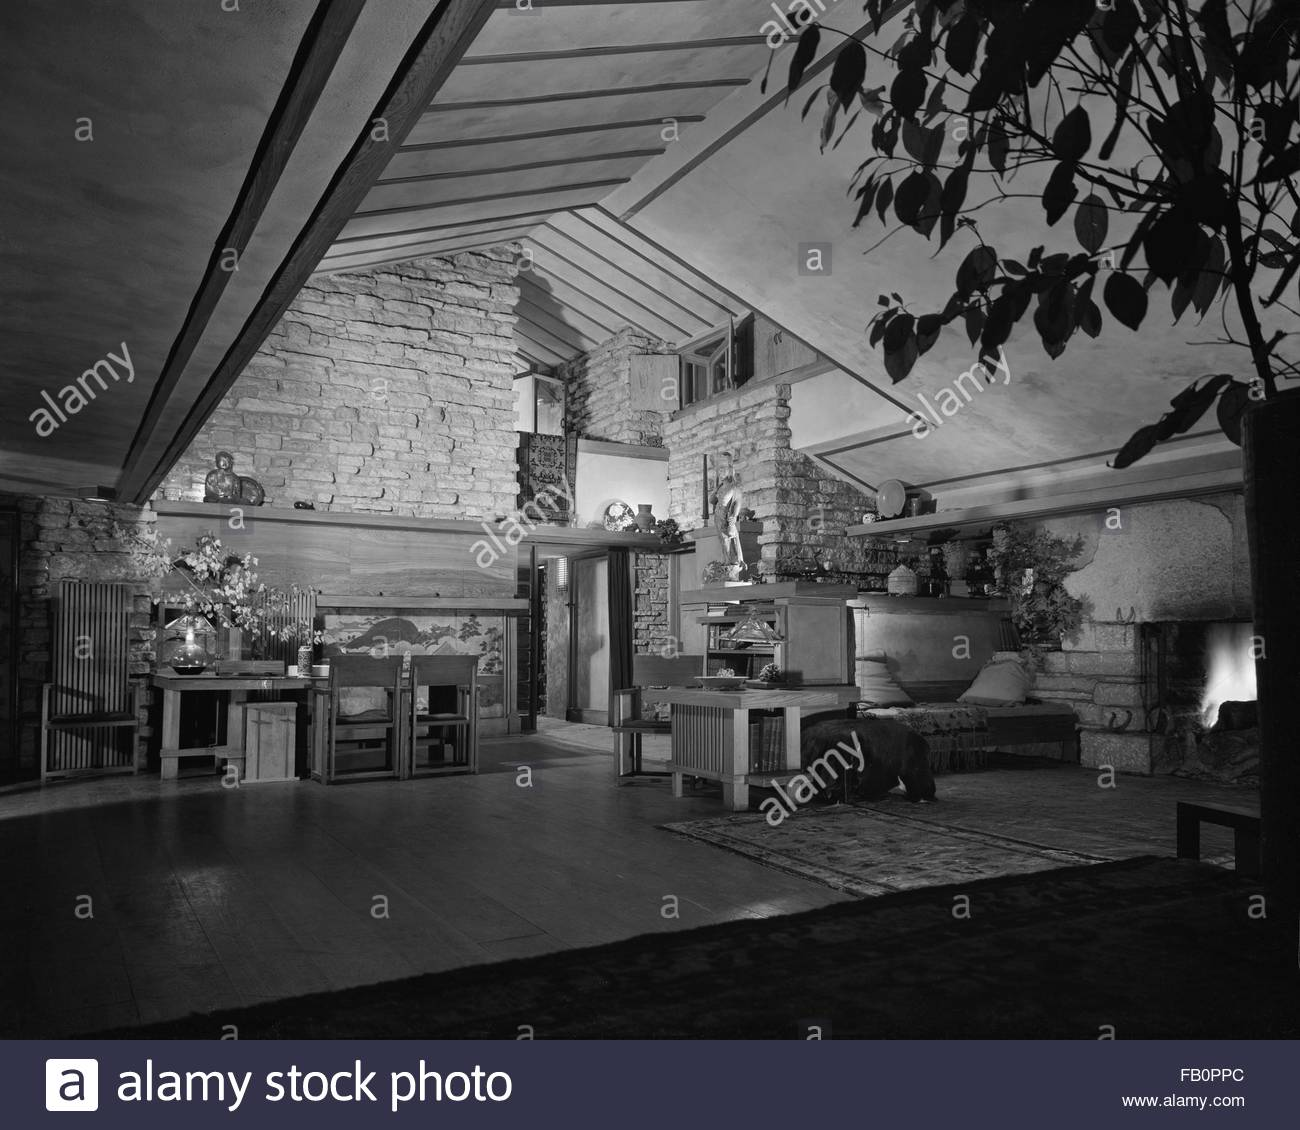 Taliesin East in Spring Green (Wis.), 1937 Dec. Interior, wide view of living room. - Stock Image